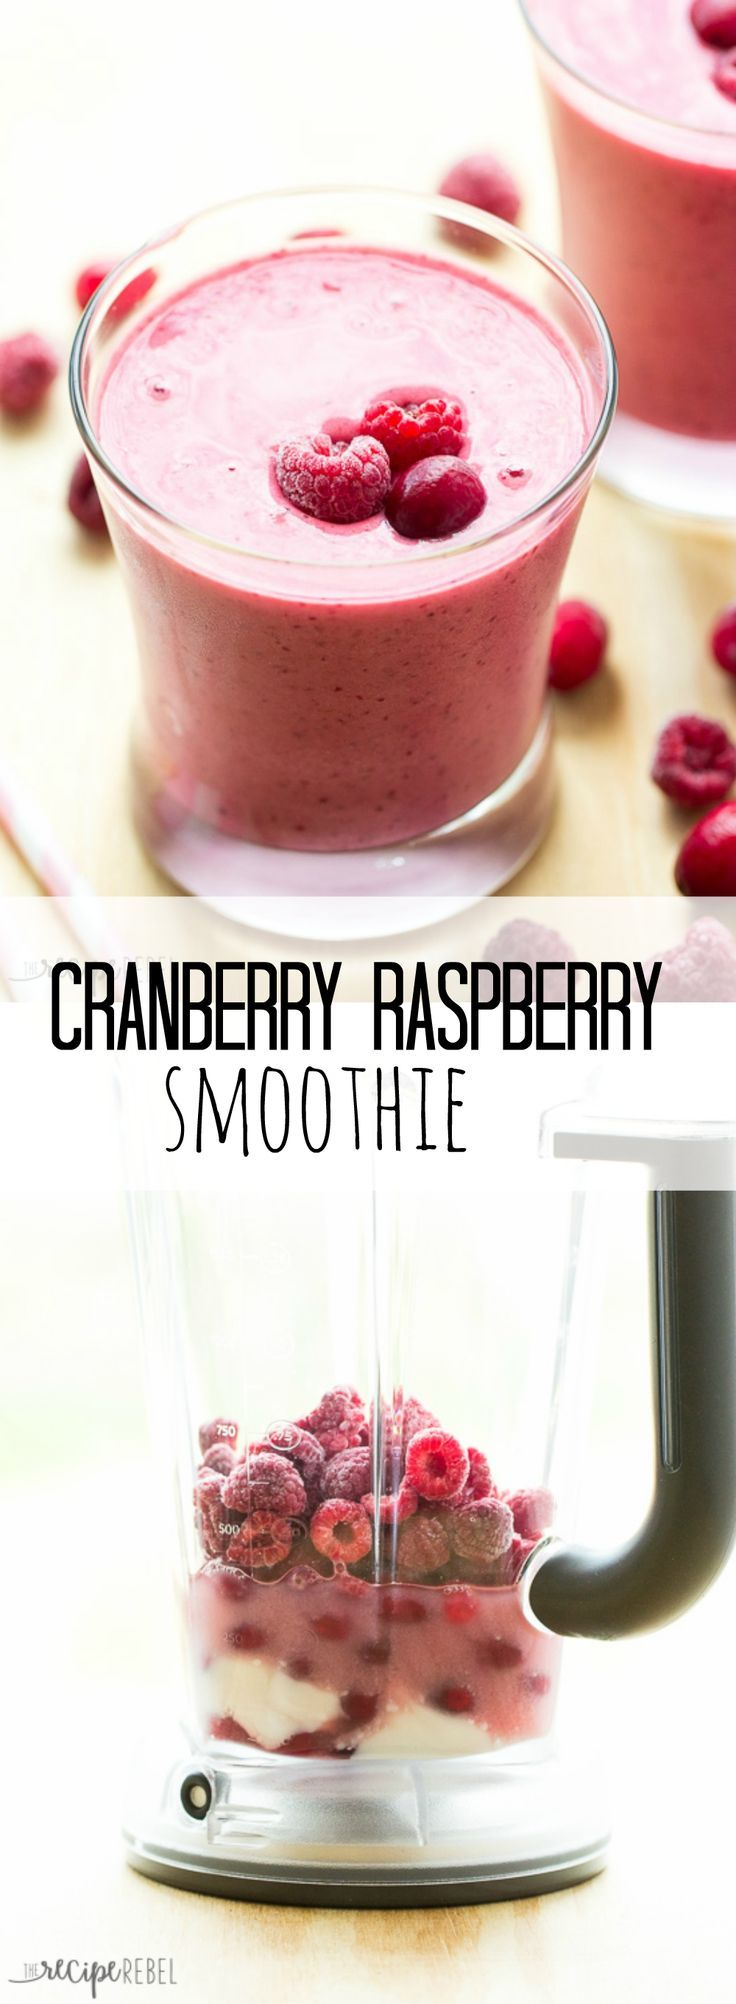 how to make a simple raspberry smoothie with blender